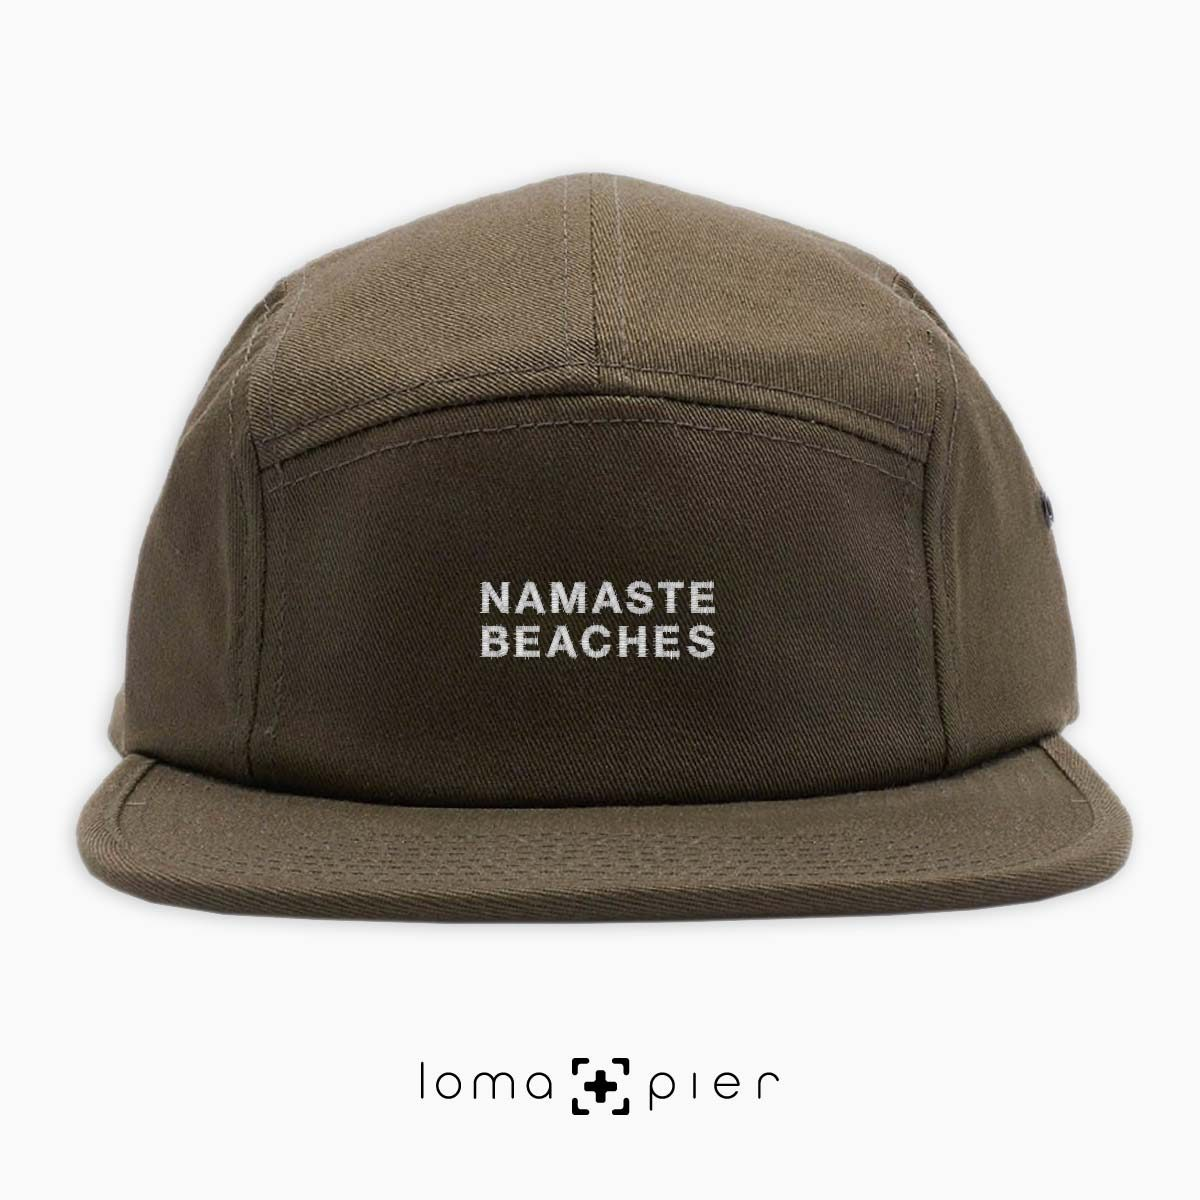 NAMASTE BEACHES hermosa beach yoga embroidered on an olive green cotton 5-panel hat by loma+pier hat store